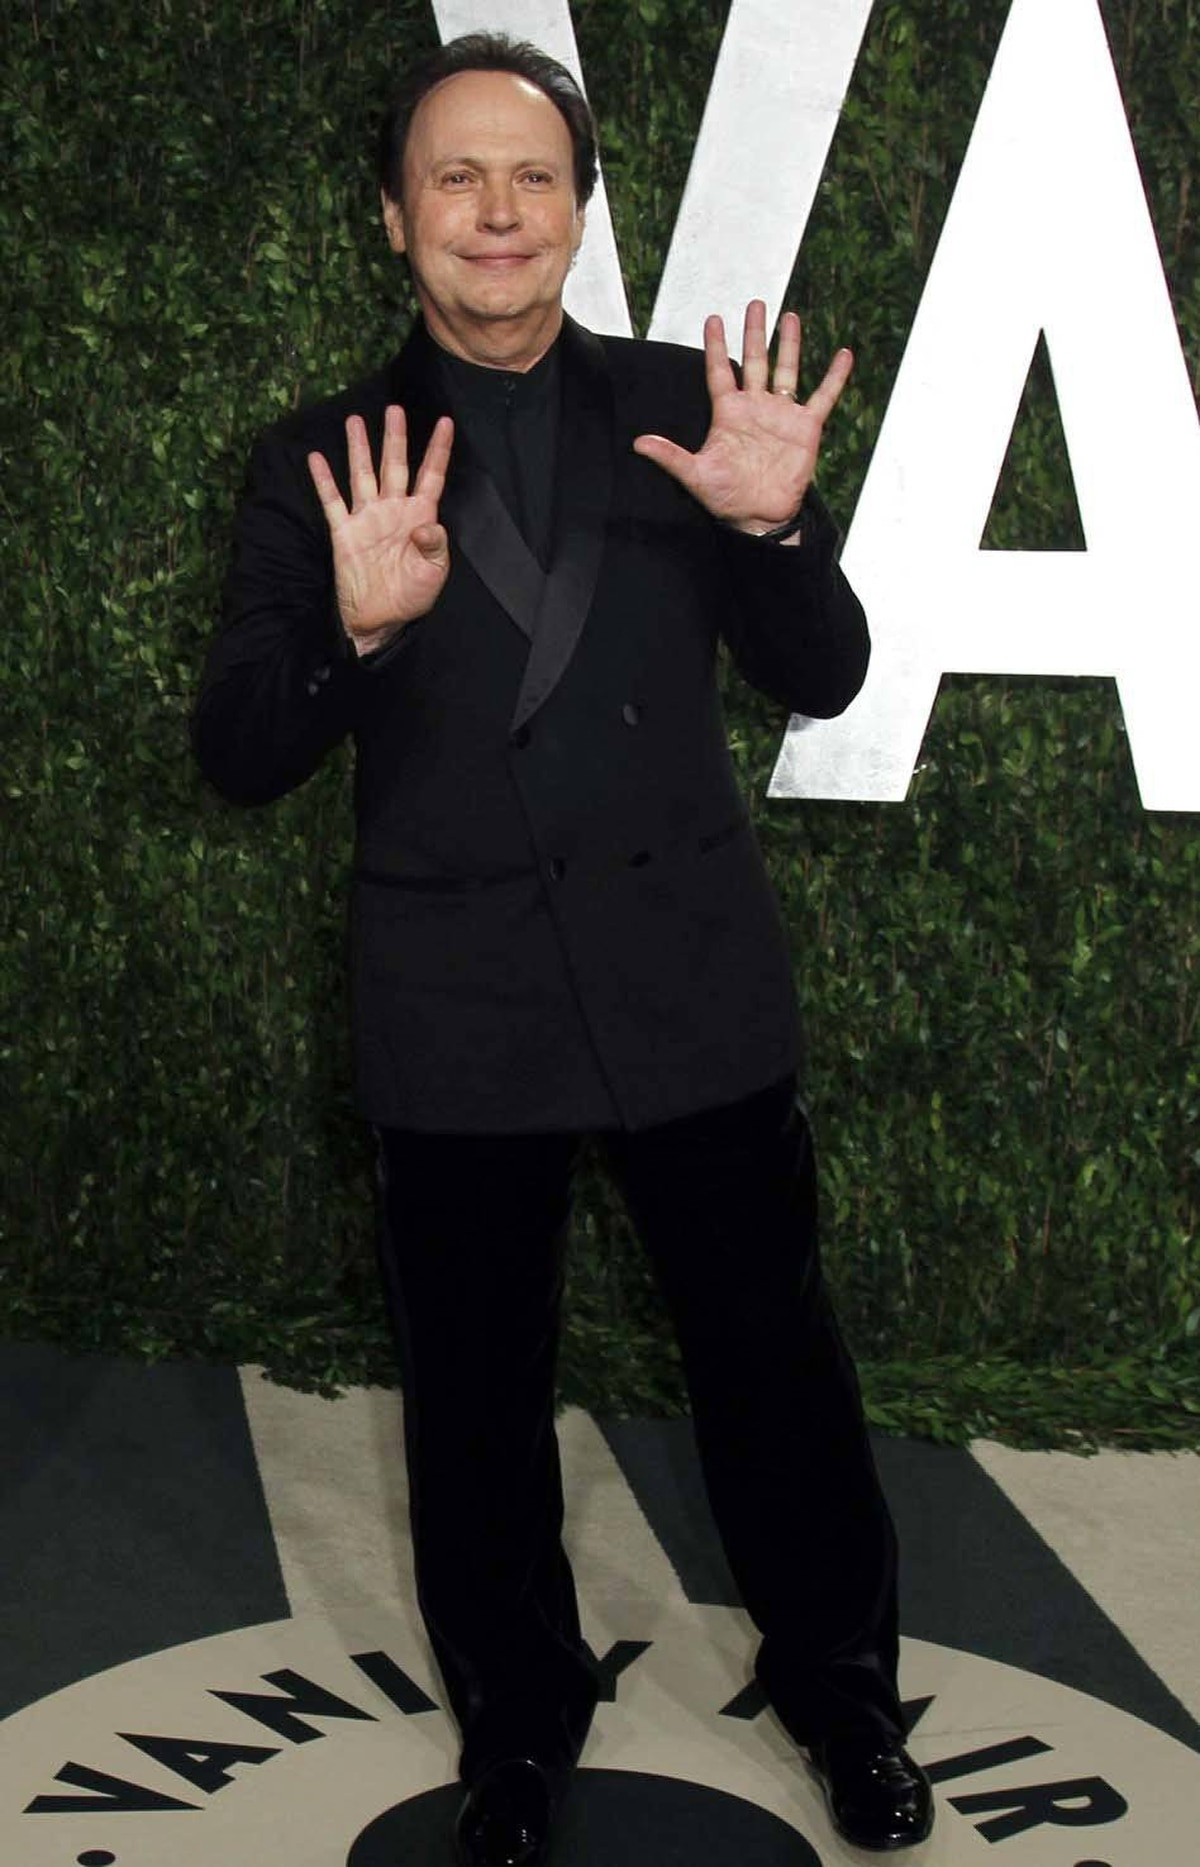 Billy Crystal counts the number of times he's been funny since 1991 at the Vanity Fair Oscar party in West Hollywood on Sunday.